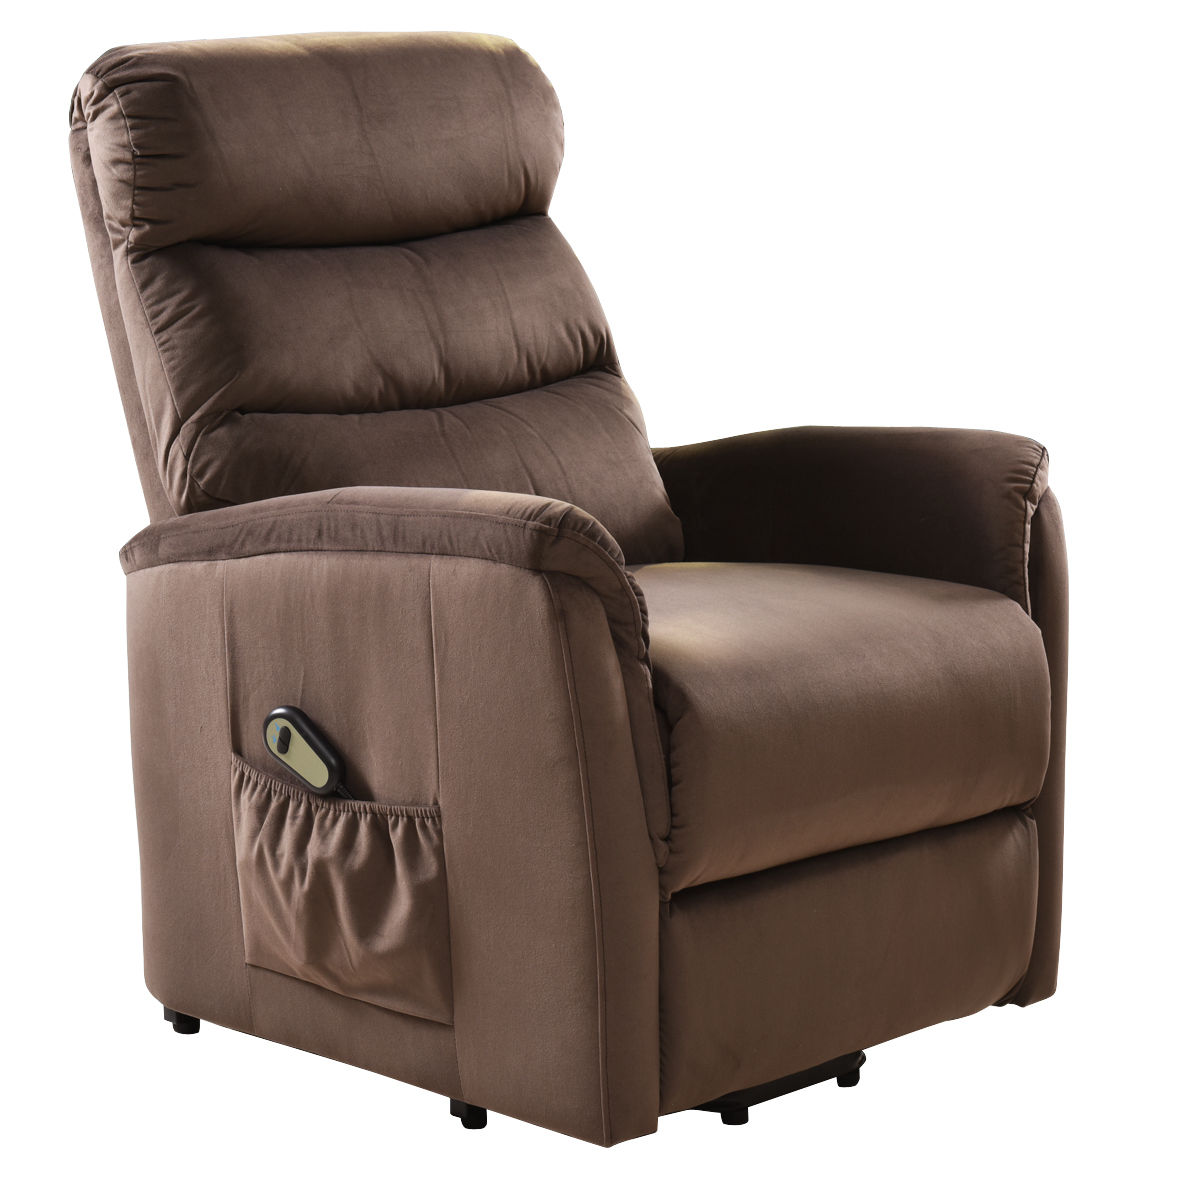 Costway Electric Lift Chair Recliner Reclining Chair Remote Living Room Furniture New  sc 1 st  Walmart : electric reclining armchair - islam-shia.org